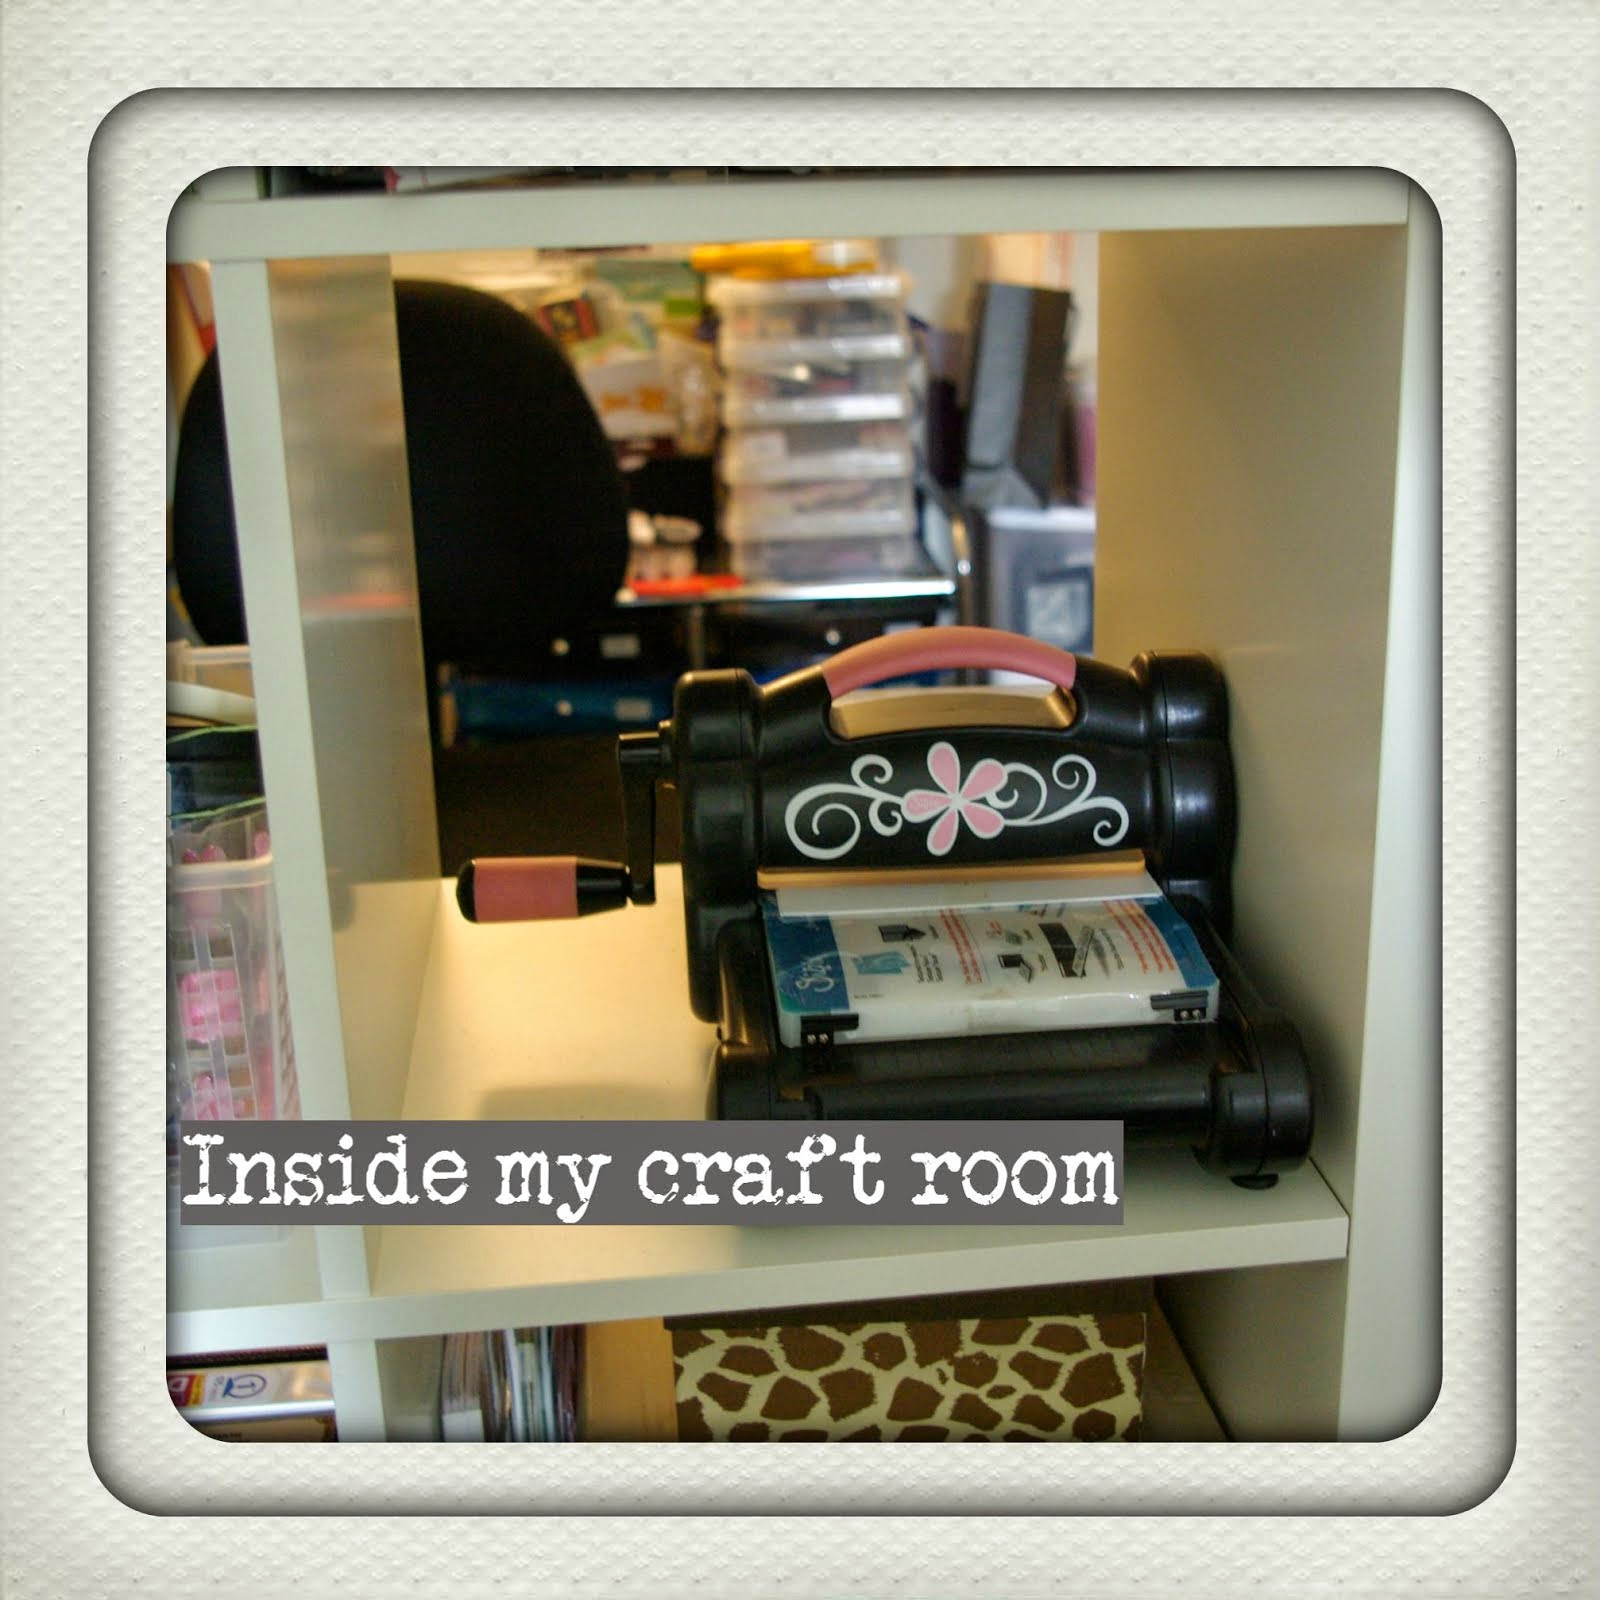 Inside my craft room